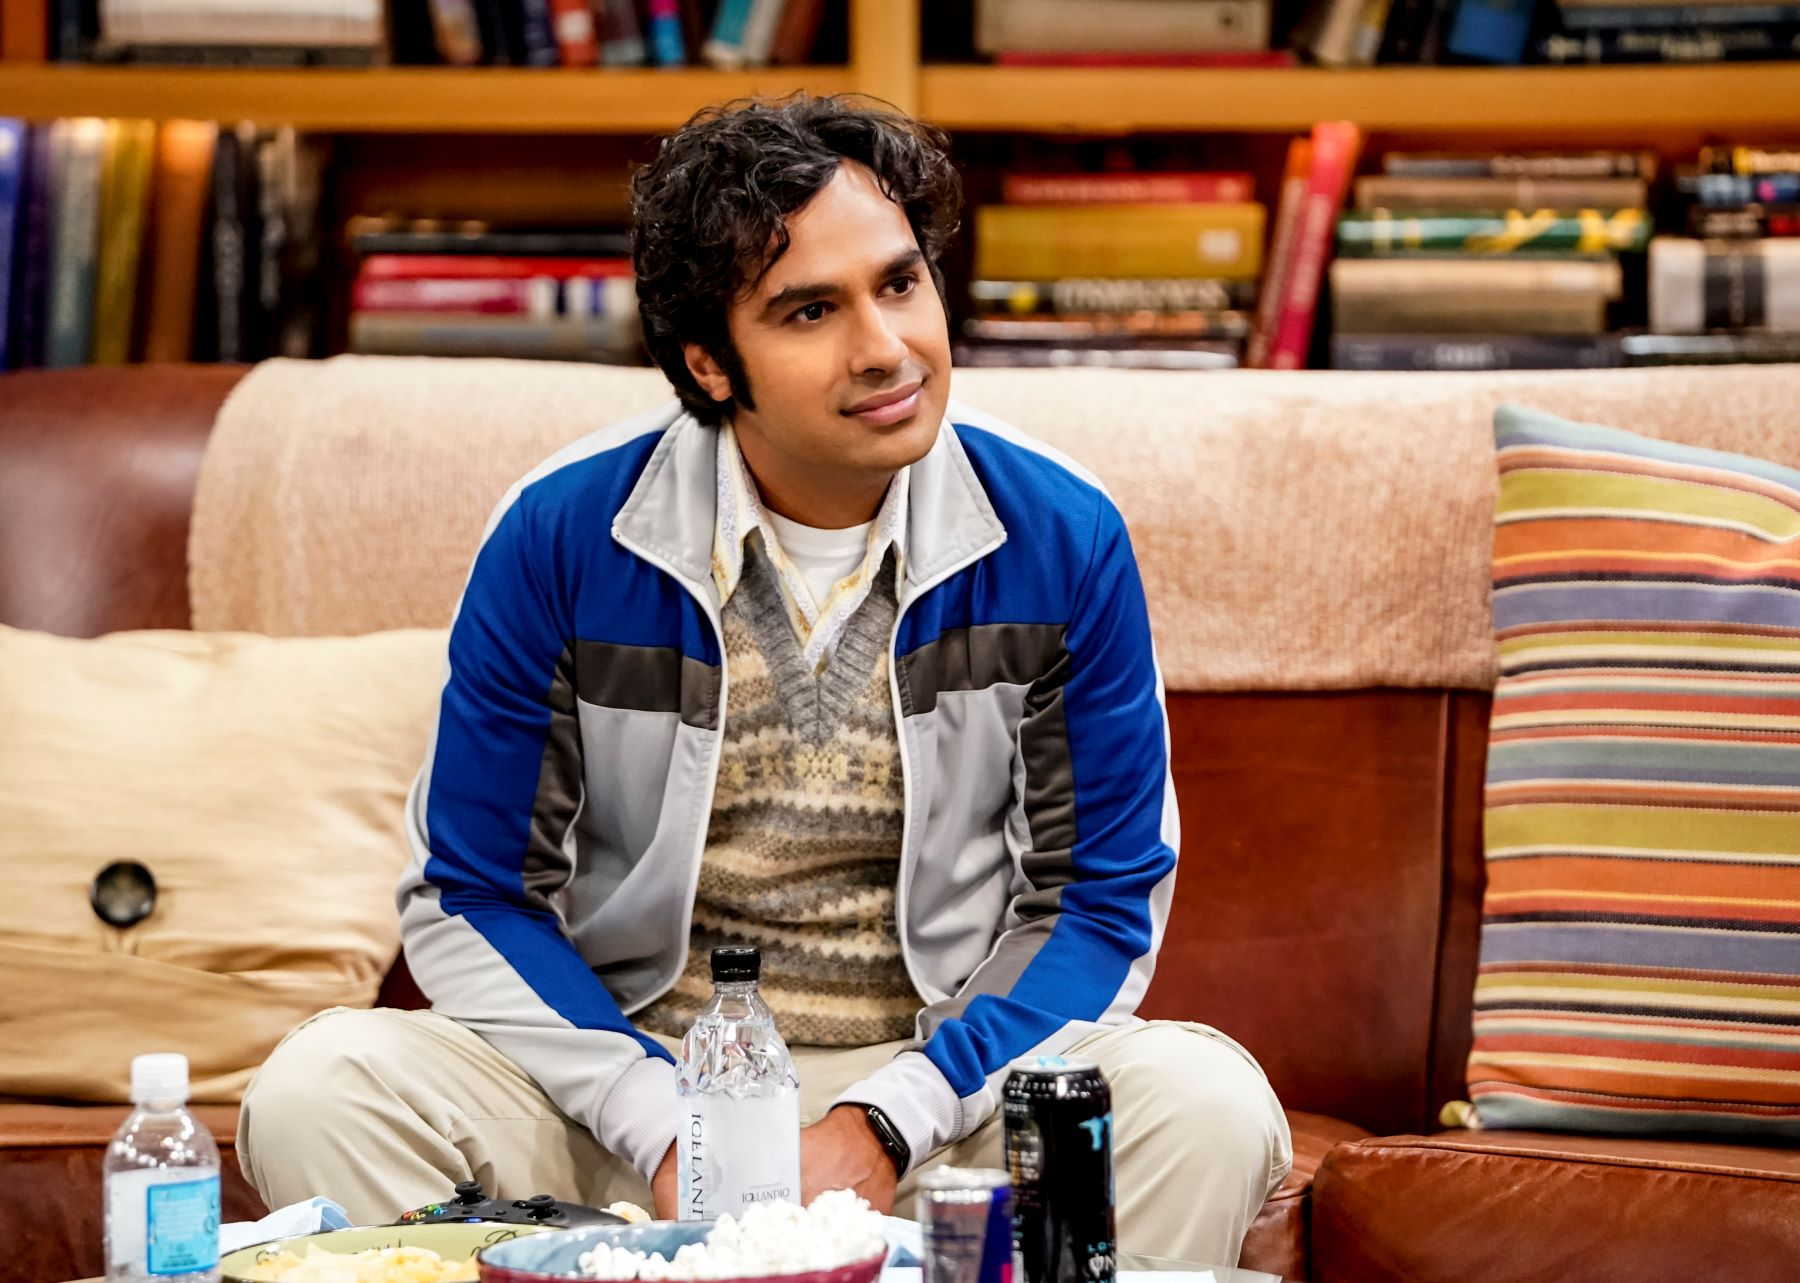 The Big Bang Theory': The Real Reason Raj Didn't Find Love in the Finale